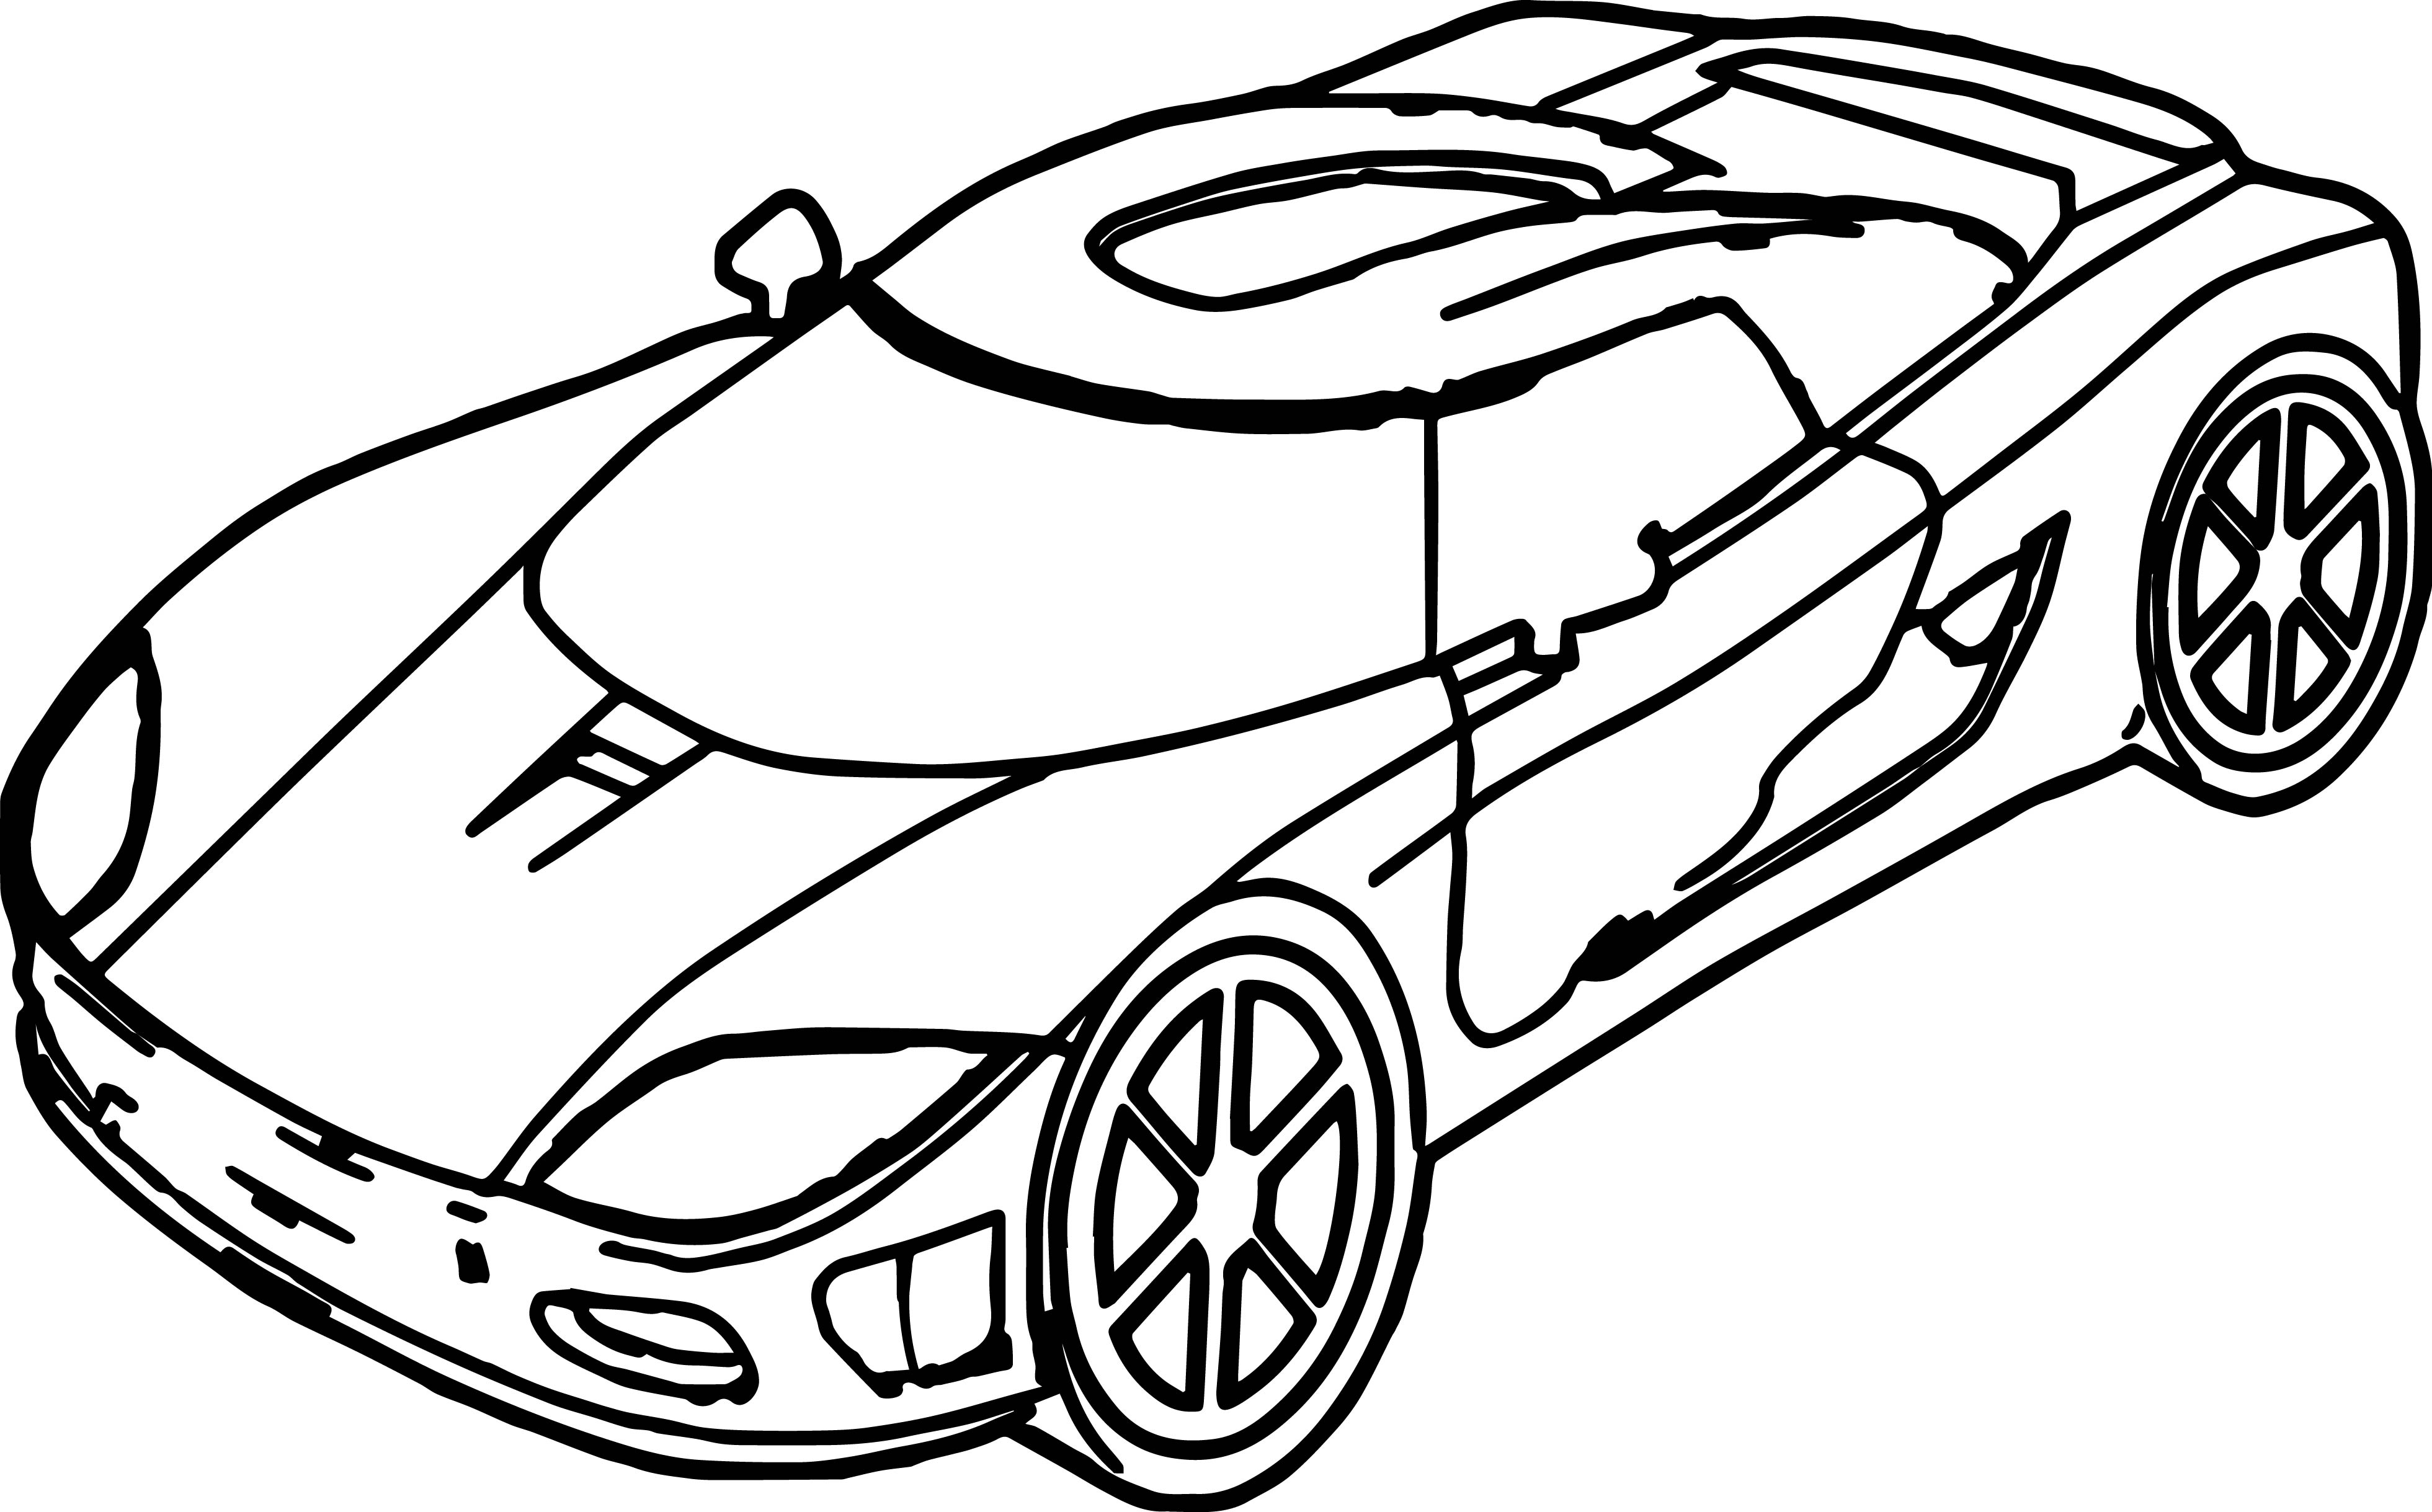 sports car drawing at getdrawings com free for personal use sports